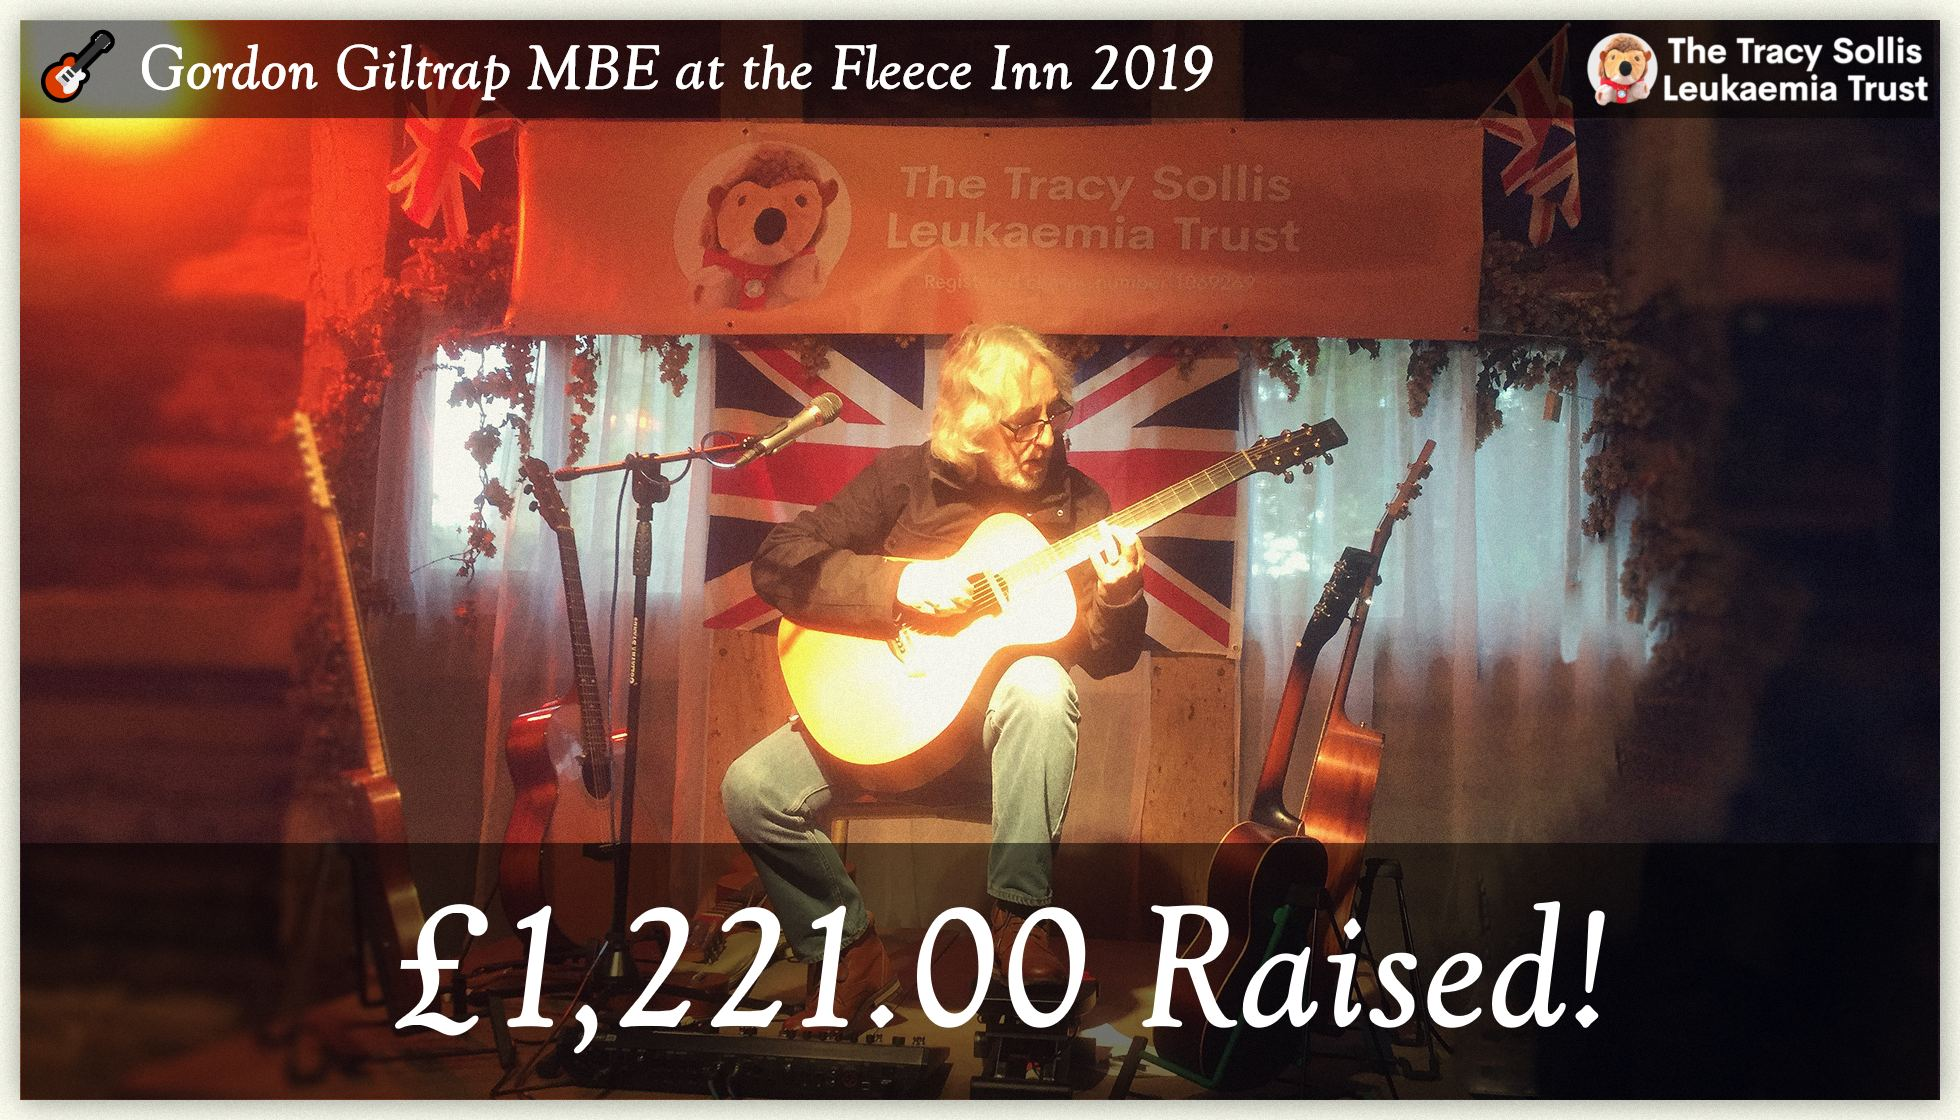 £1,221.00 Raised! 🎸 Gordon Giltrap MBE at the Fleece Inn 2019